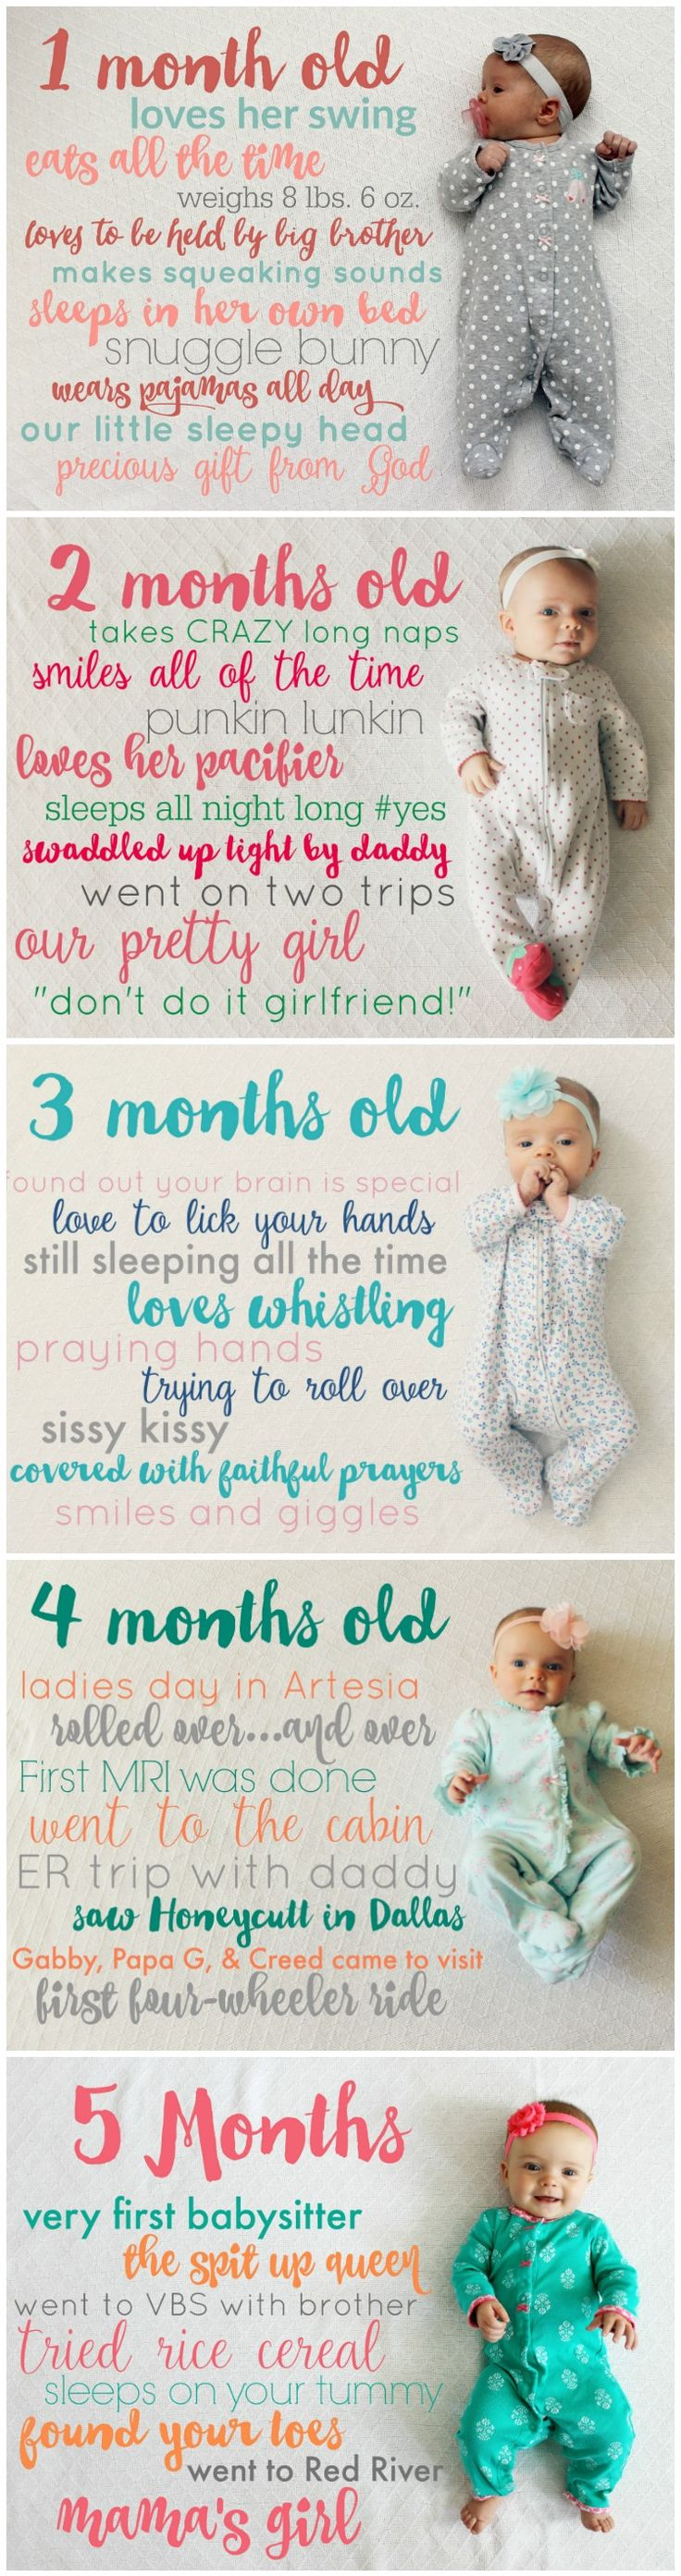 8 months old birthday message ; 8-months-old-birthday-message-81038d383e362e517f3096d13f7b2045-monthly-photos-creative-monthly-baby-pictures